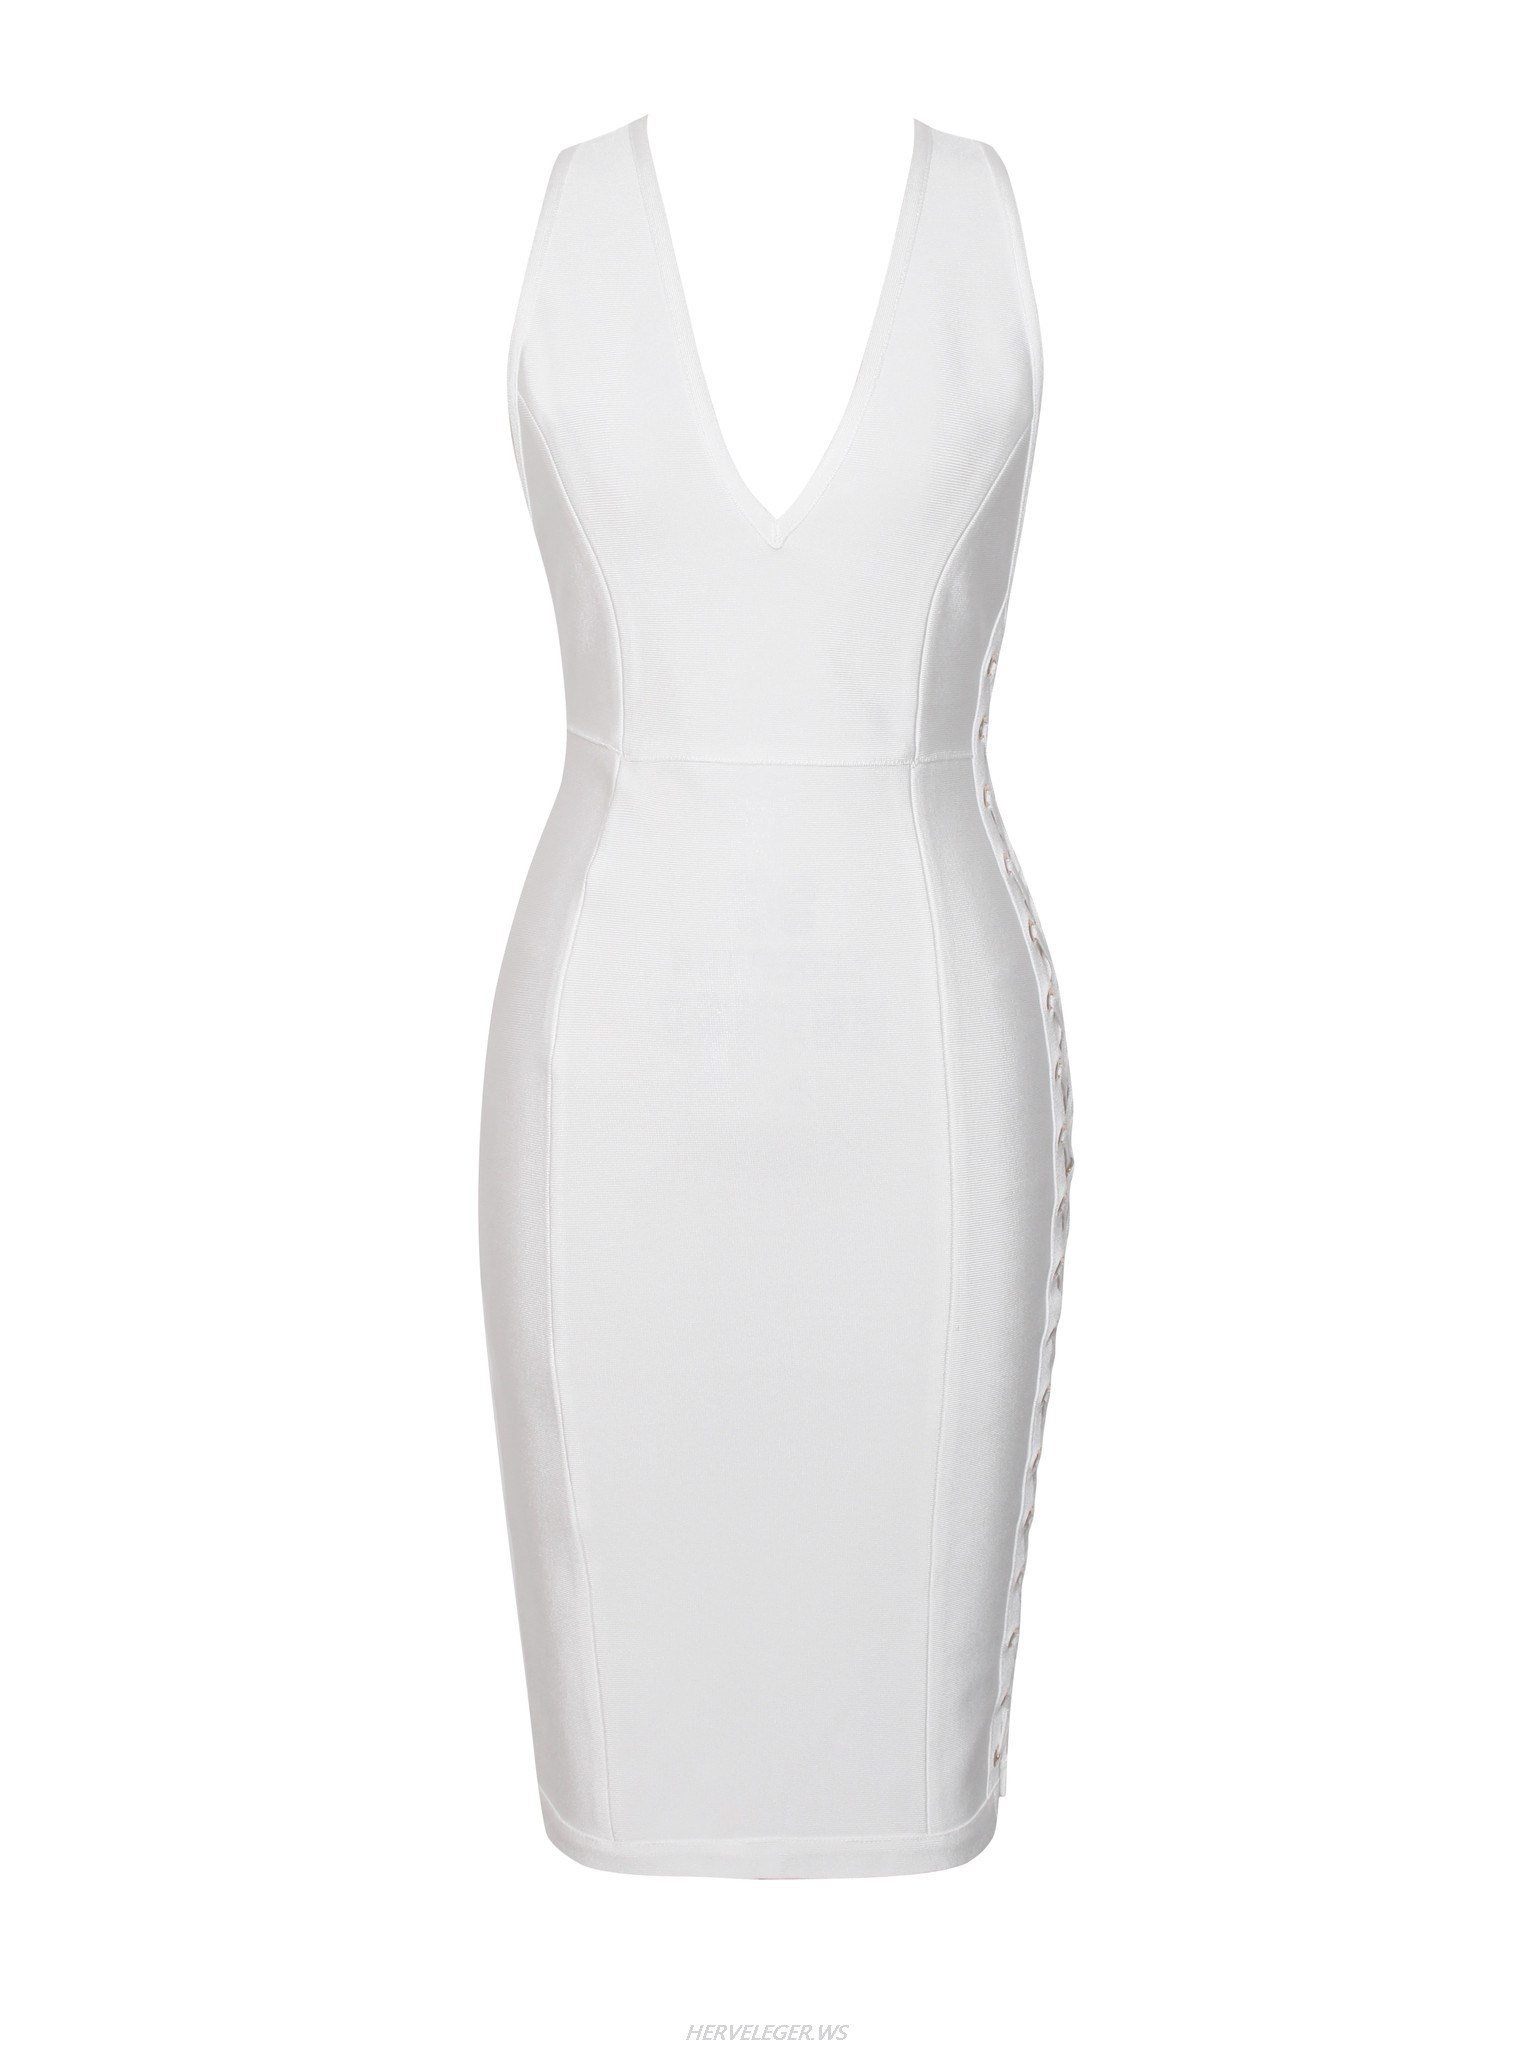 Herve Leger White V Neck Cut Out Dress